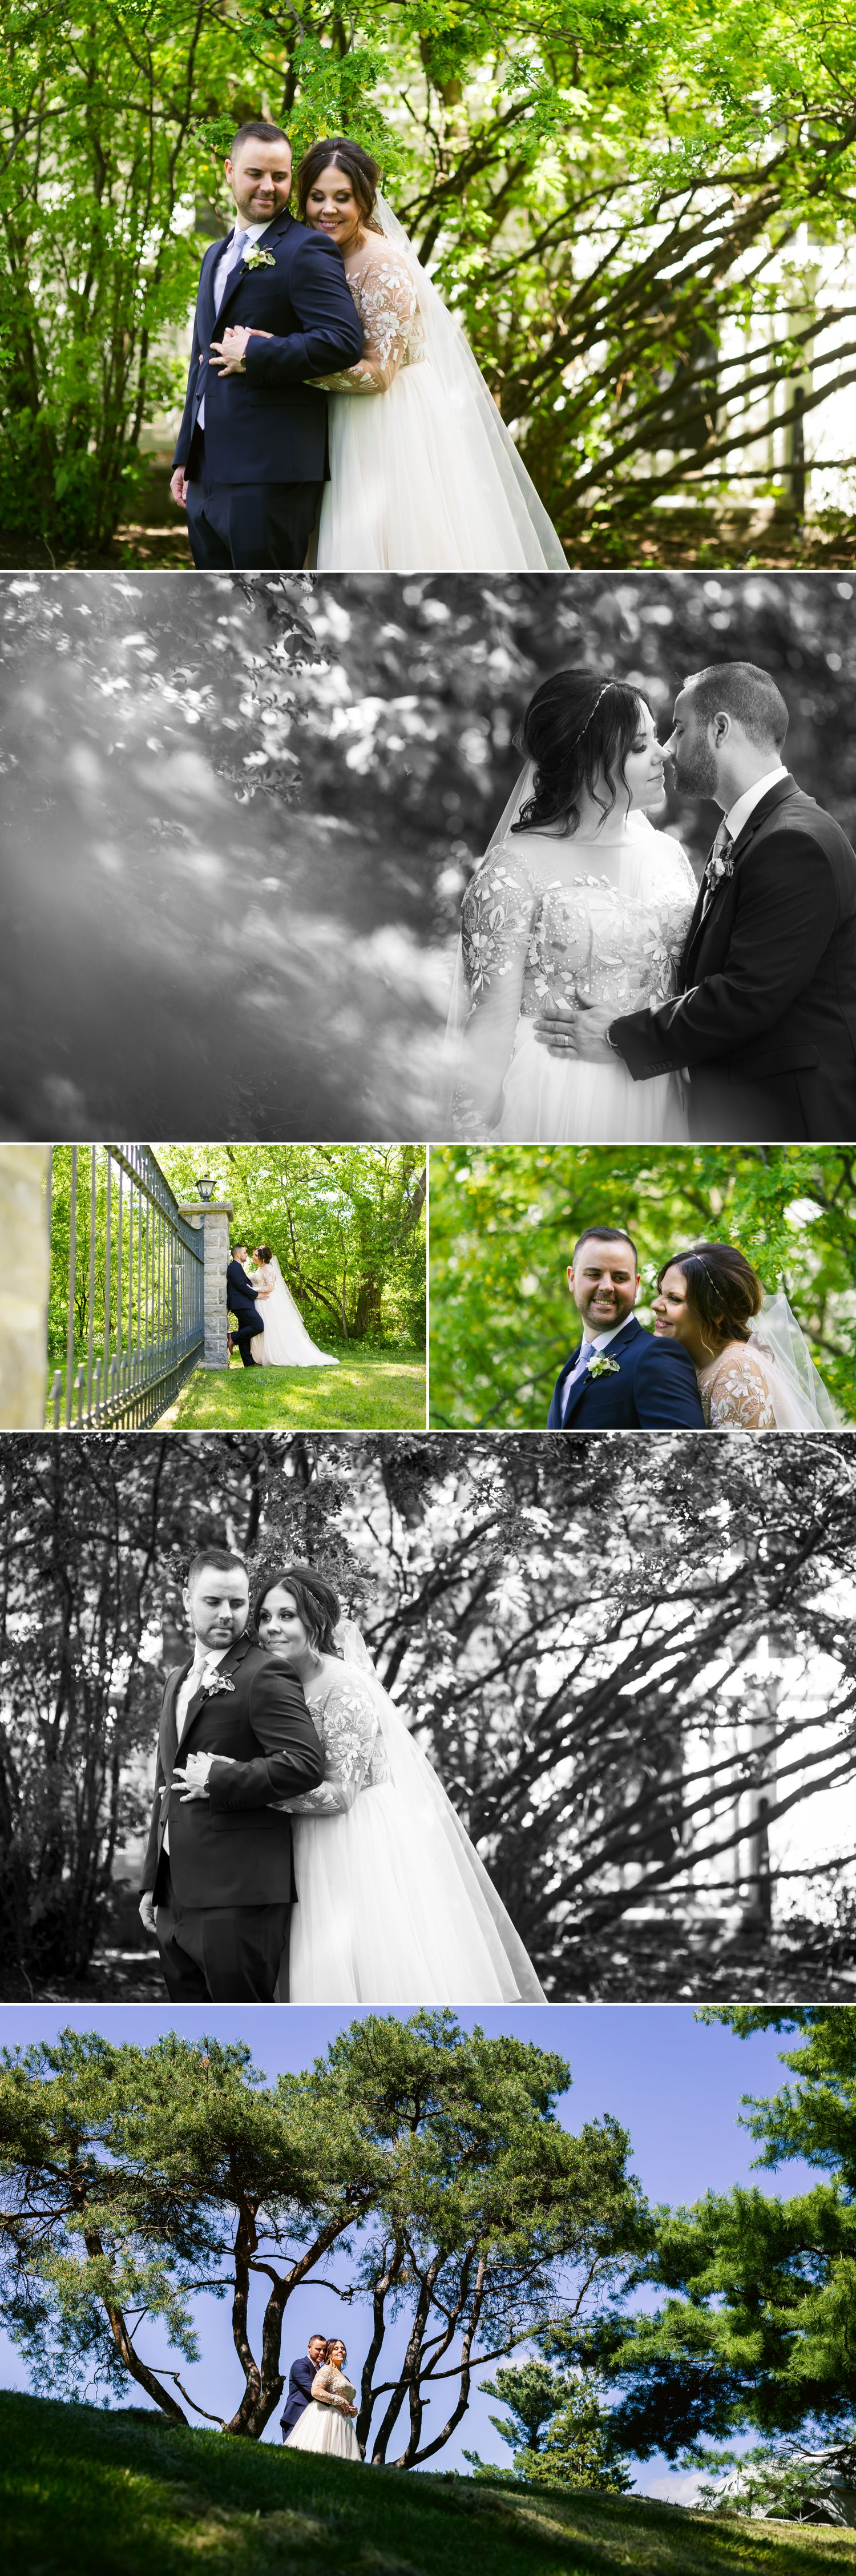 Portraits of the bride and groom after their spring wedding at Billings Estate in Ottawa